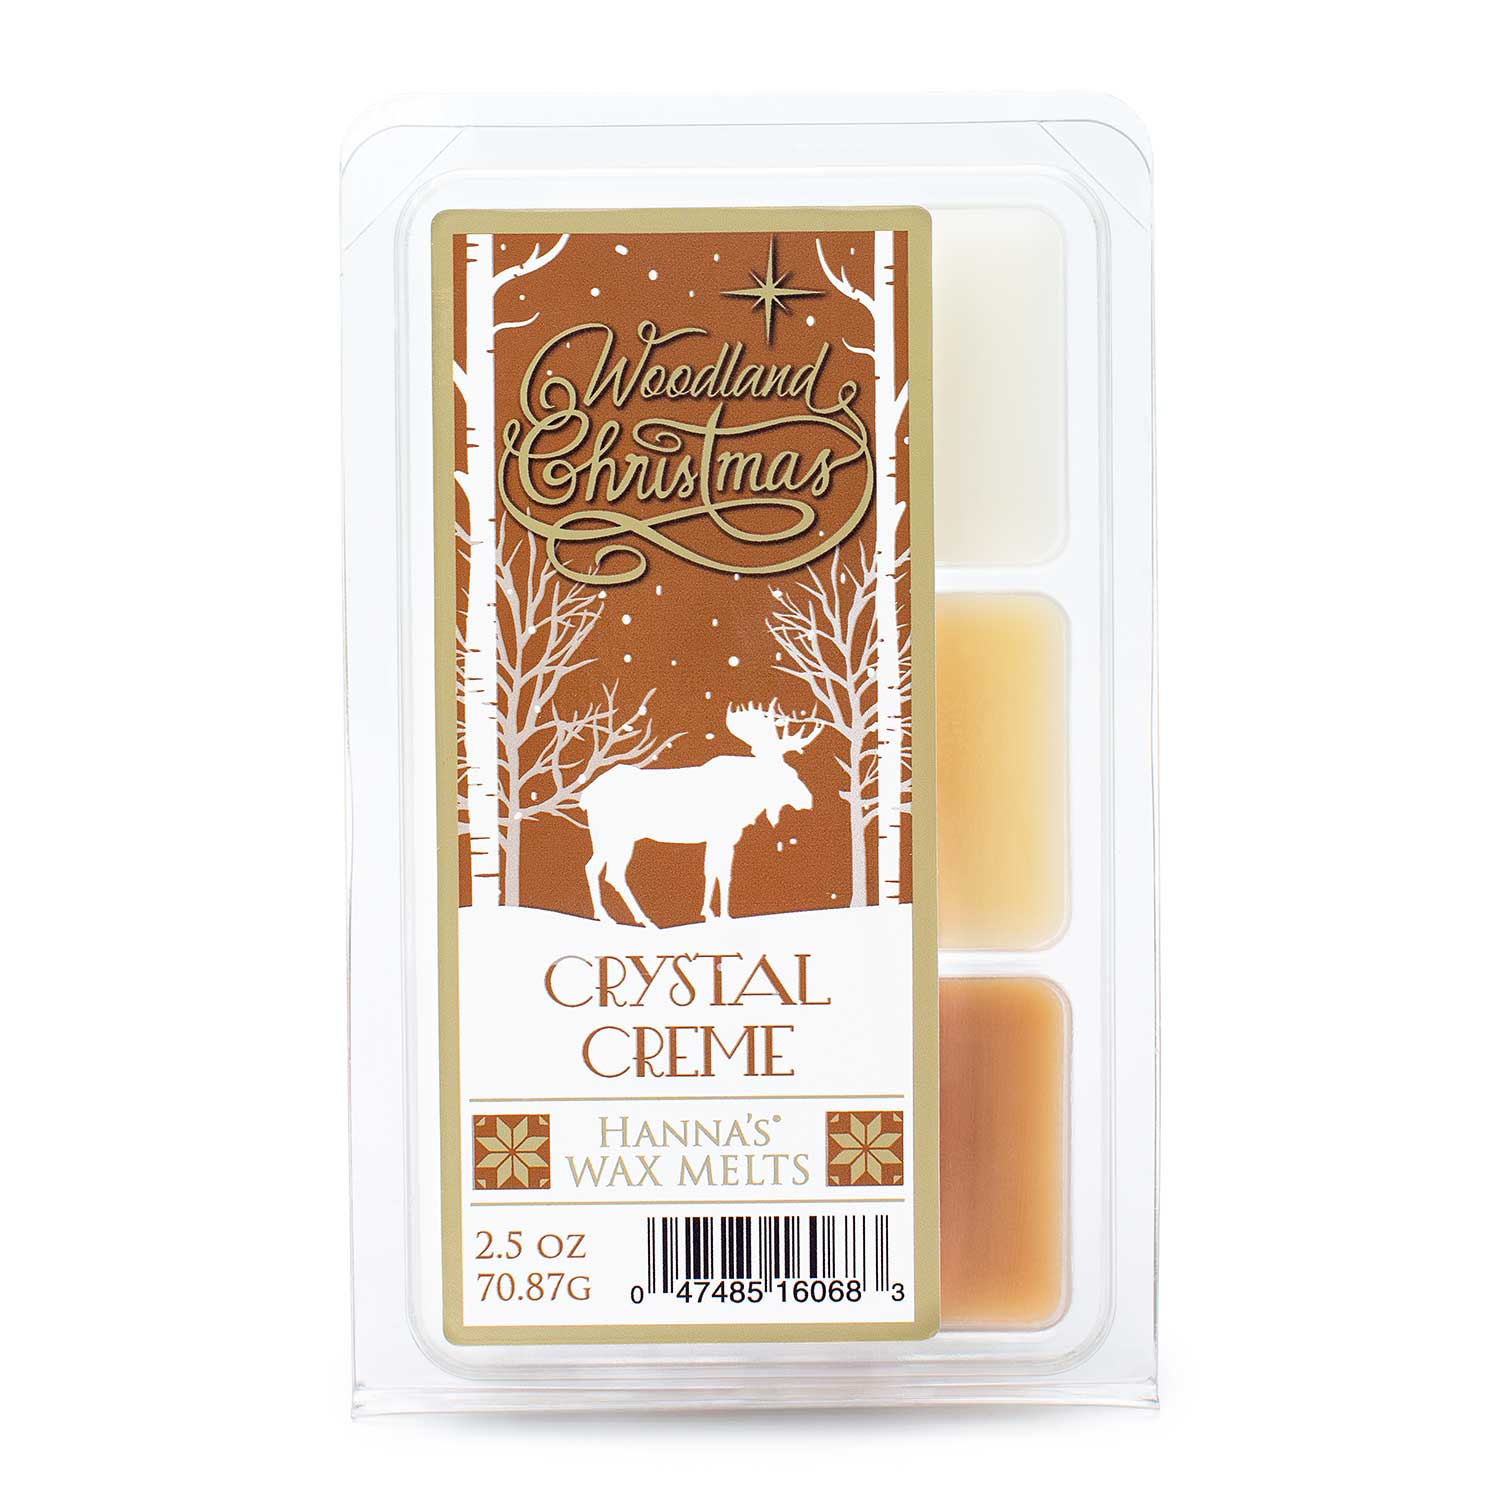 Crystal Creme Scented Wax Melts